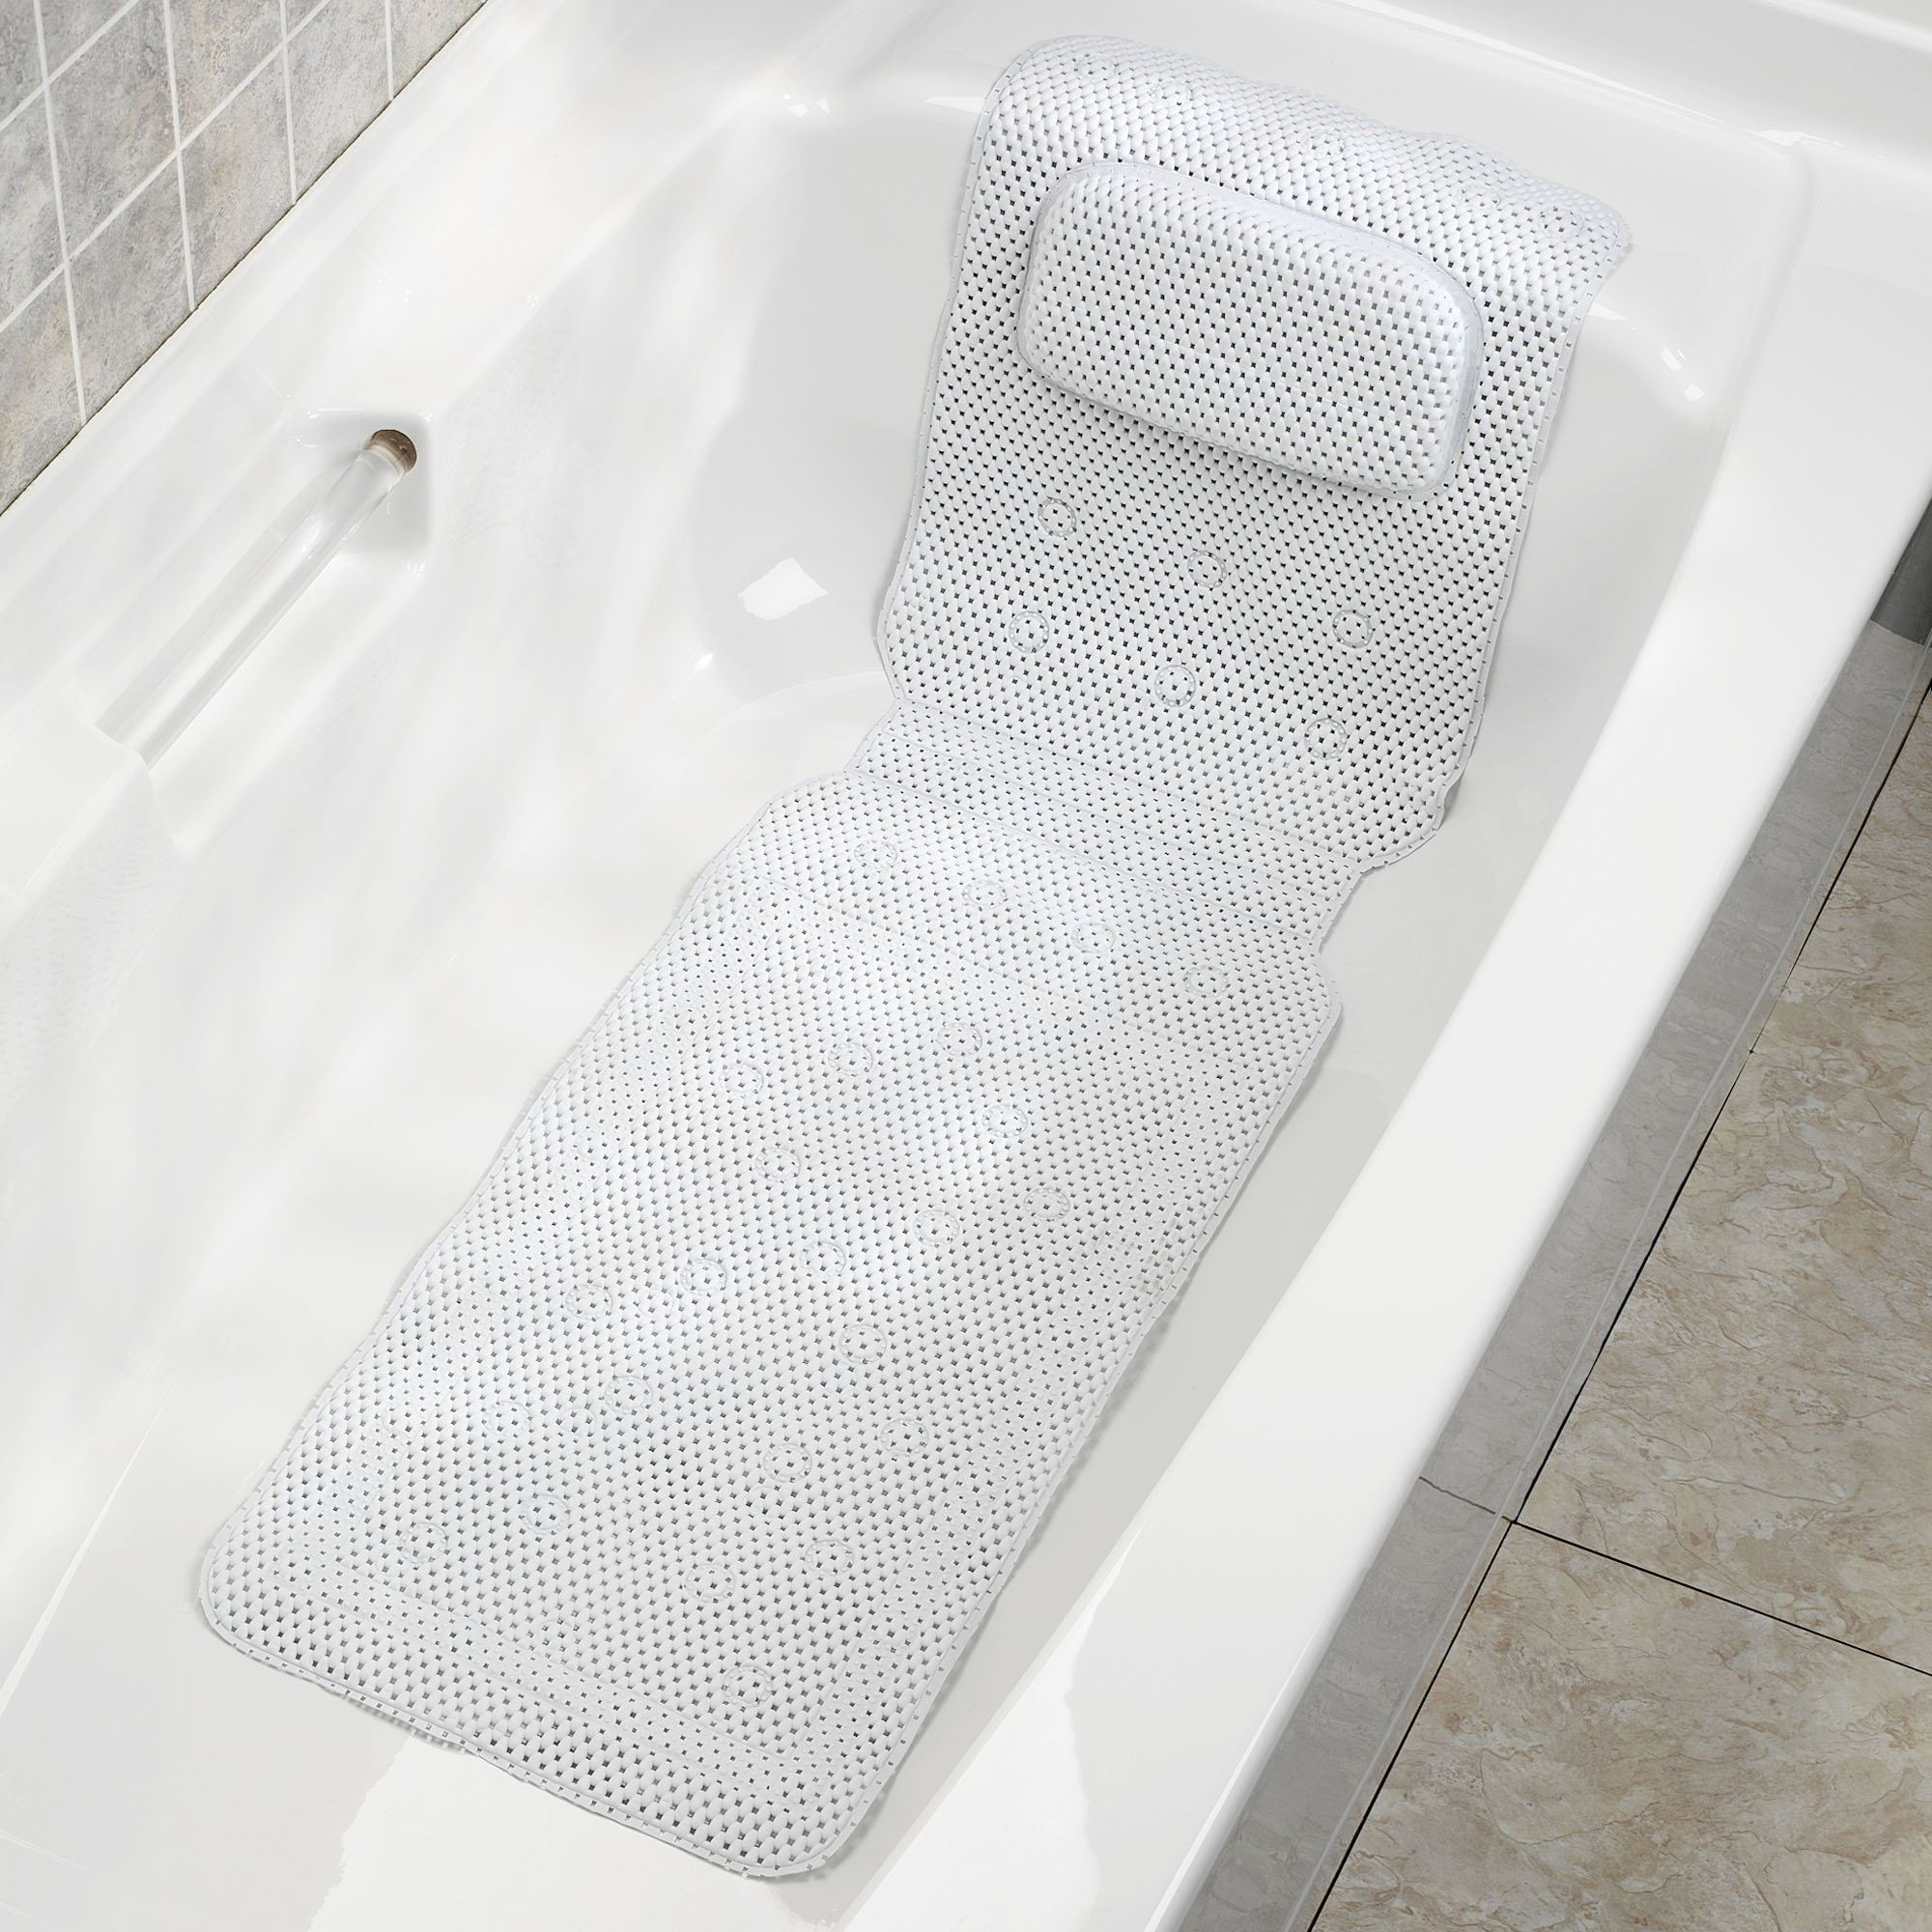 uk beyond large walmart amazon bath baby mats info memory tubs at mat bathtub rugs simpsonovi foam reglazed tub for and bed